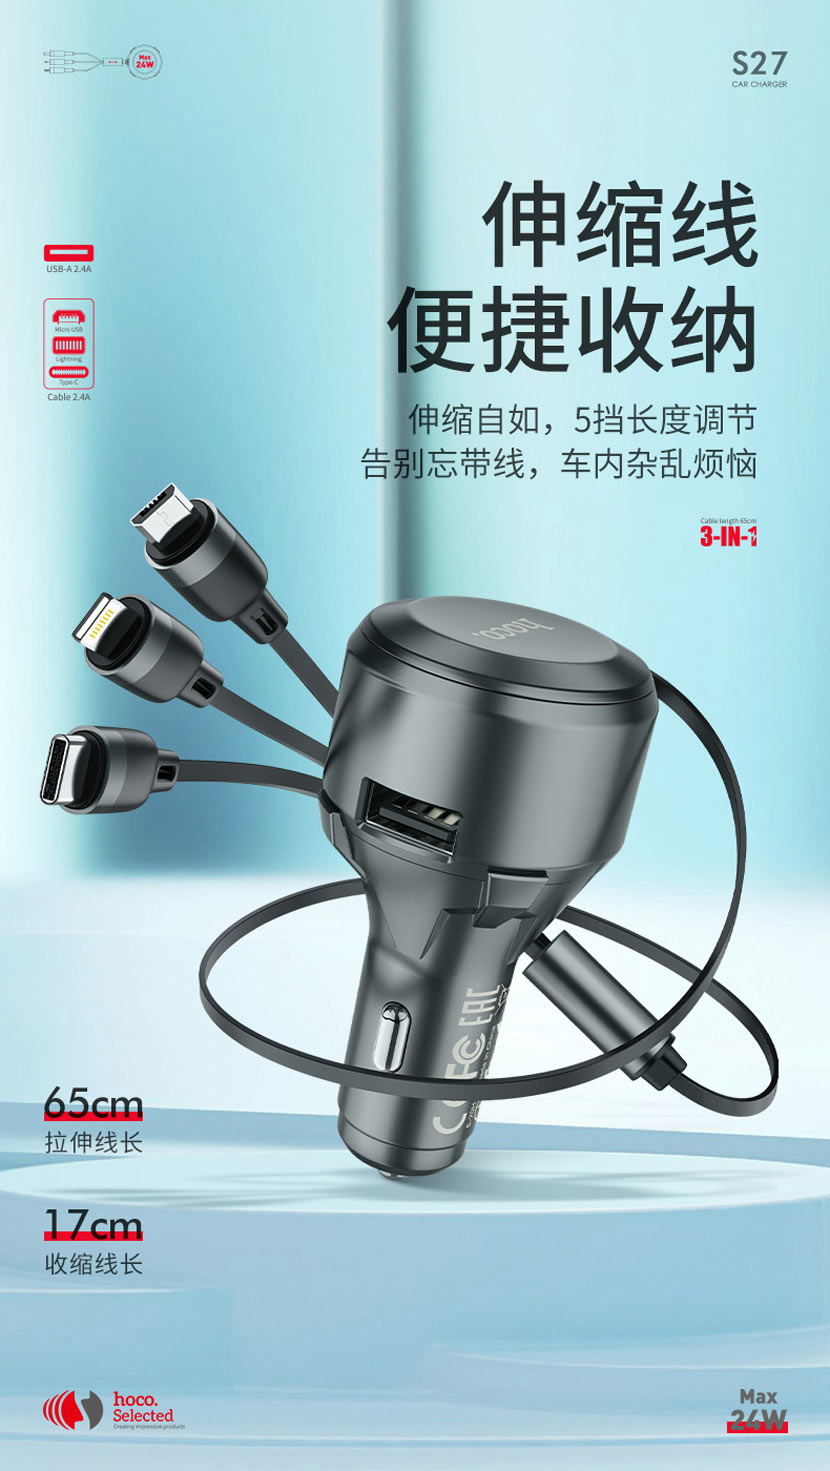 hoco selected news s27 tributo single port car charger with 3in1 cable retractable cn